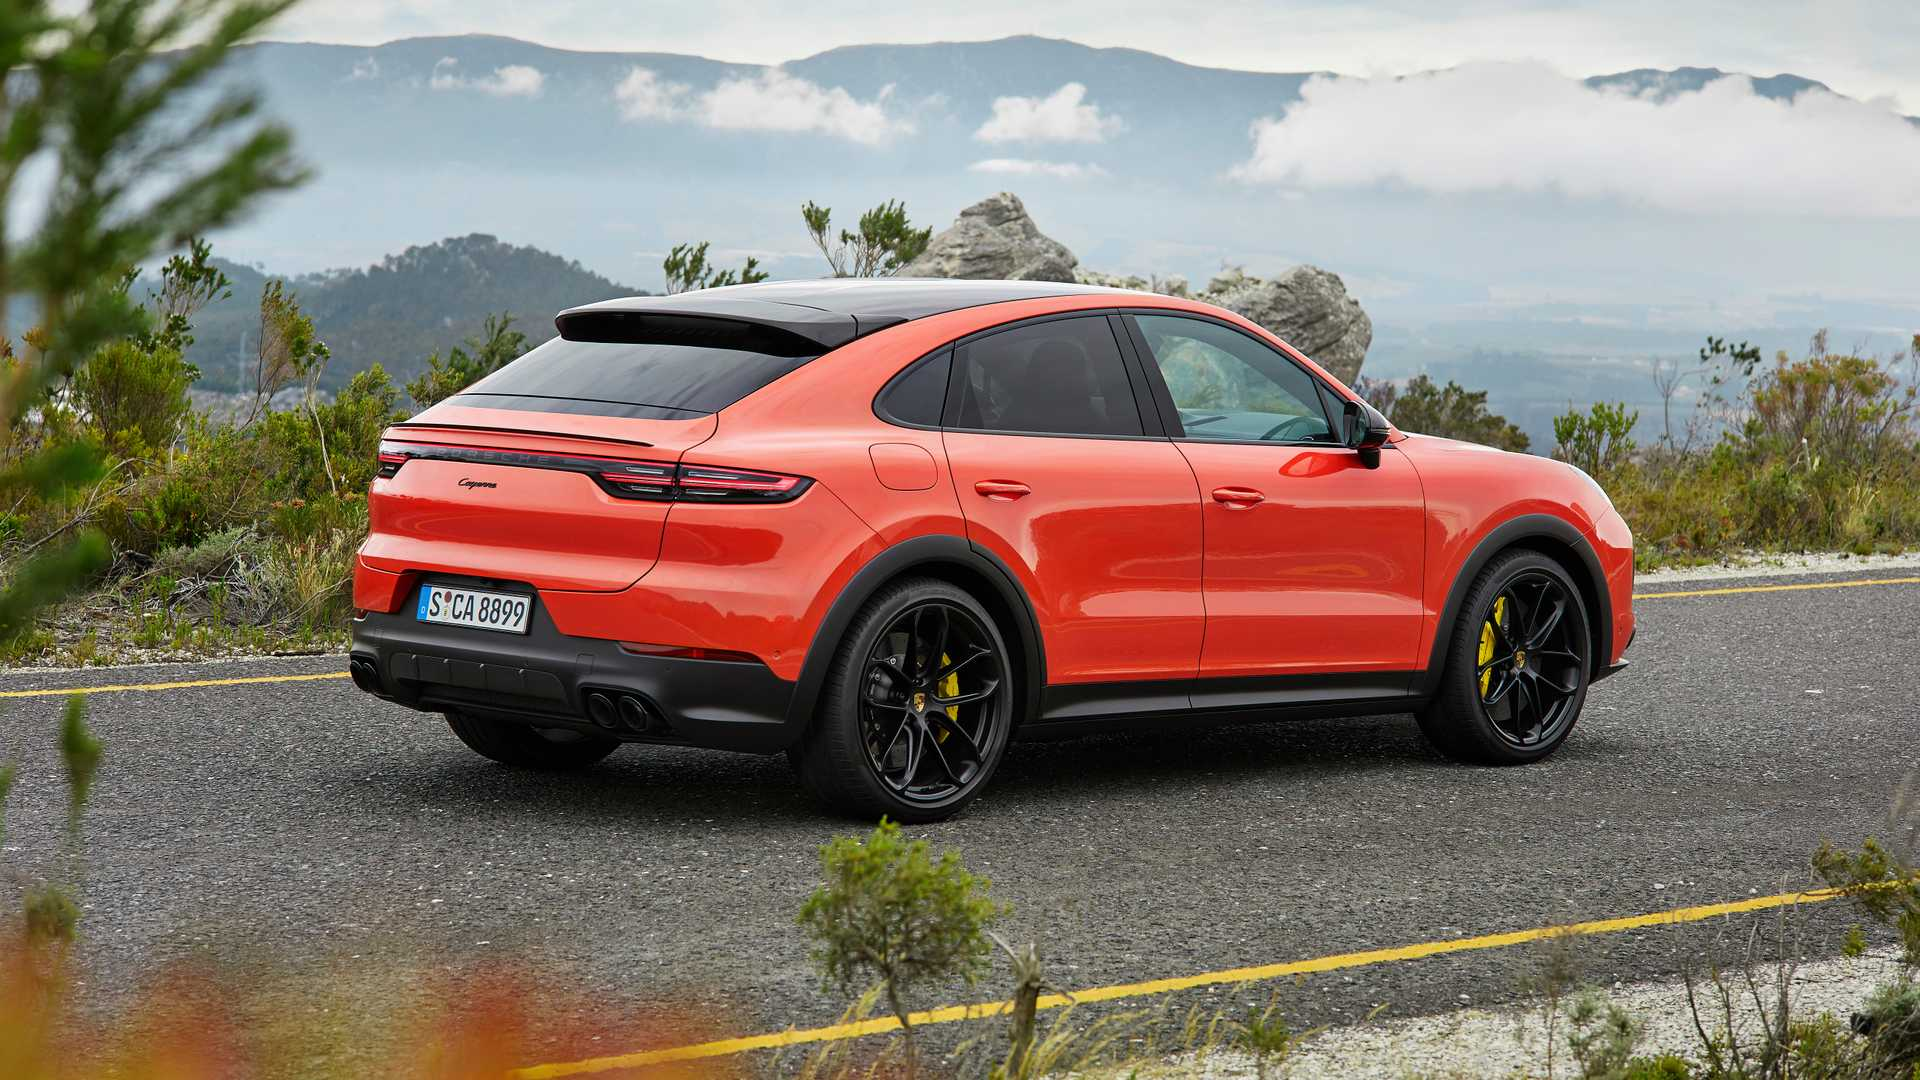 2020 Porsche Cayenne Coupe GT5 Gets Lambo Urus Engine >> Porsche Cayenne Coupe Gt Coming With Lamborghini Urus Power